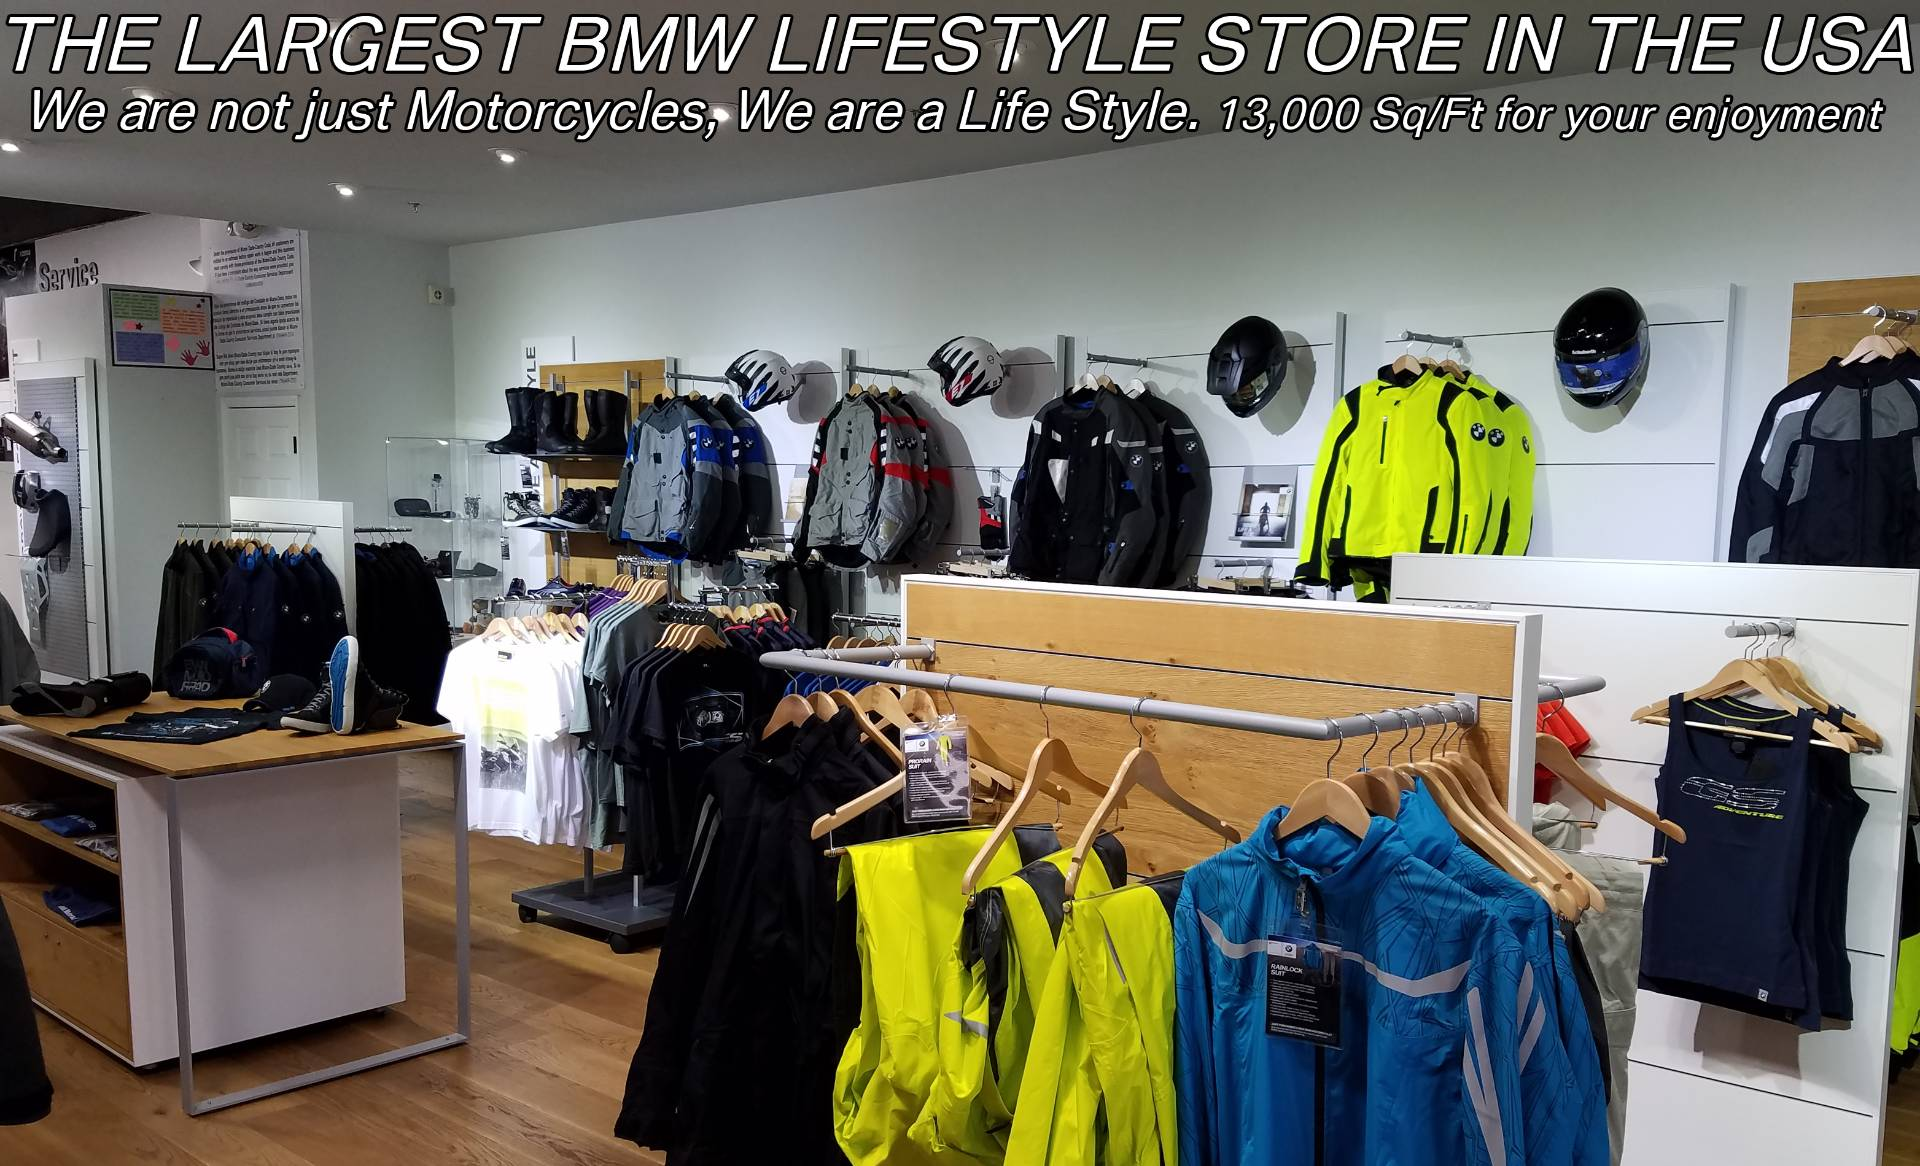 New 2019 BMW G 310 GS for sale, BMW G 310GS for sale, BMW Motorcycle GS, new BMW GS, Spirit of GS, BMW Motorcycles of Miami, Motorcycles of Miami, Motorcycles Miami, New Motorcycles, Used Motorcycles, pre-owned. #BMWMotorcyclesOfMiami #MotorcyclesOfMiami. - Photo 49